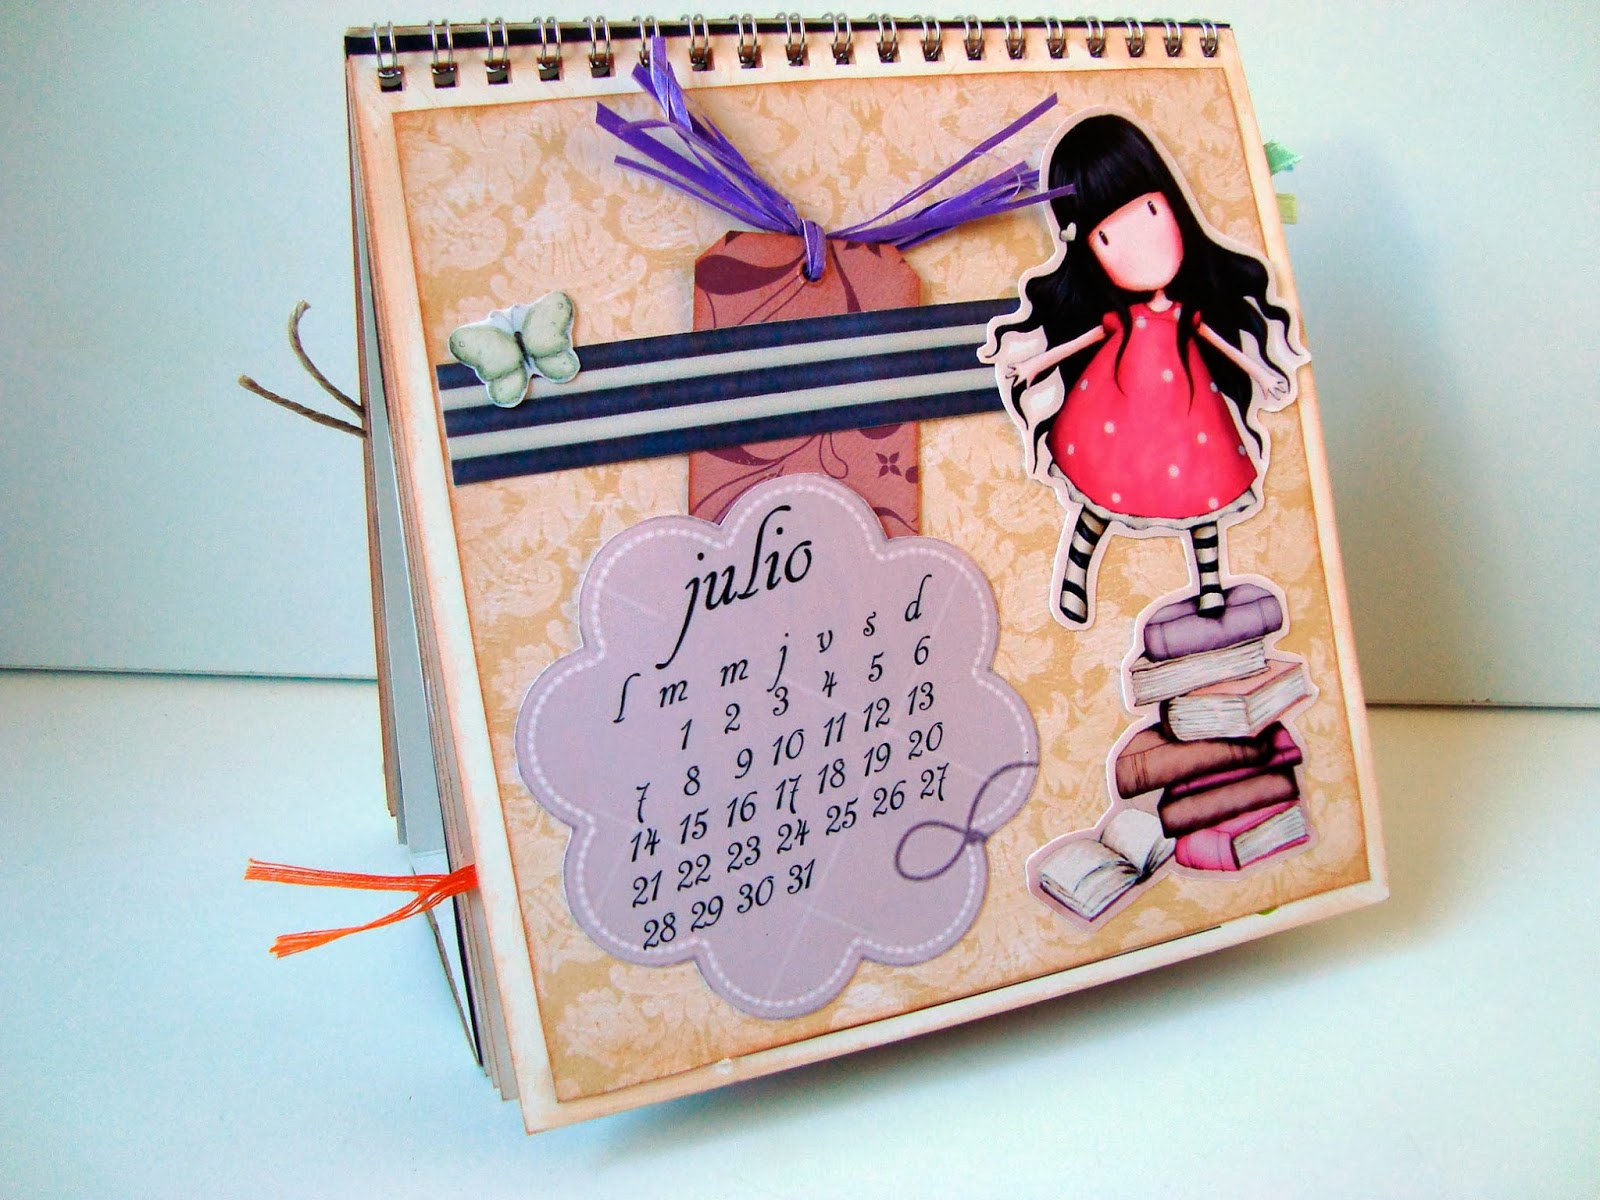 calendario_gorjuss_julio